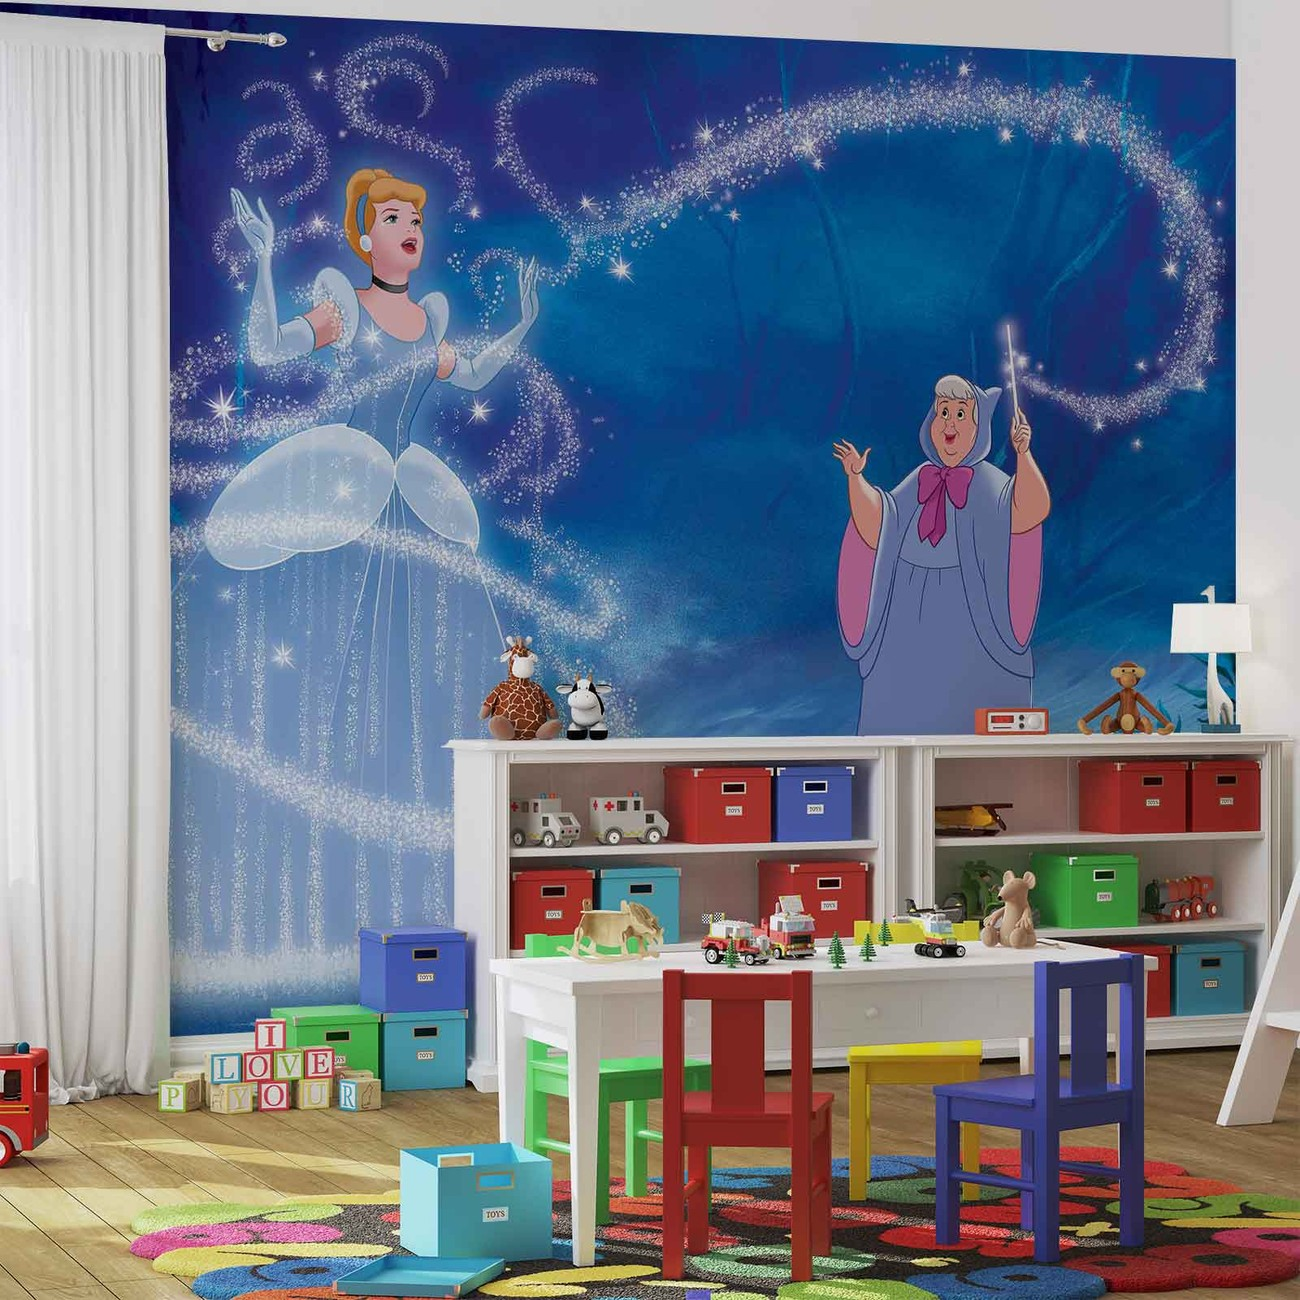 Disney princesses cinderella wall paper mural buy at for Disney princess mural asda